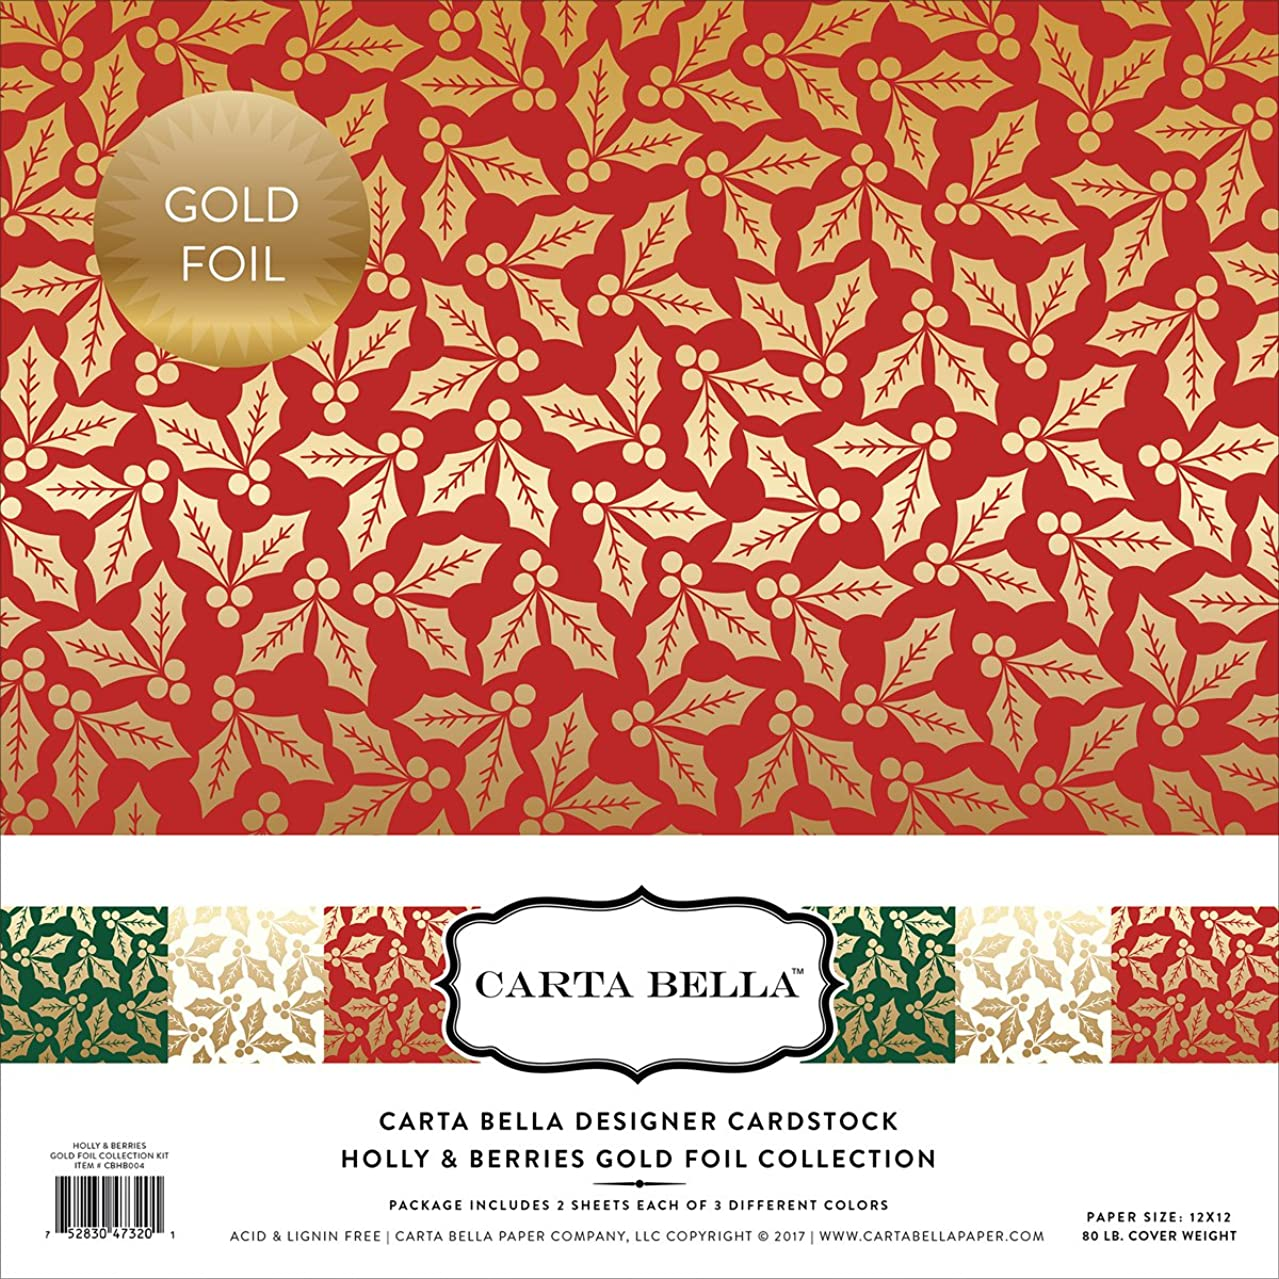 Carta Bella Paper Company Holly & Berries Gold Foil Collection Kit